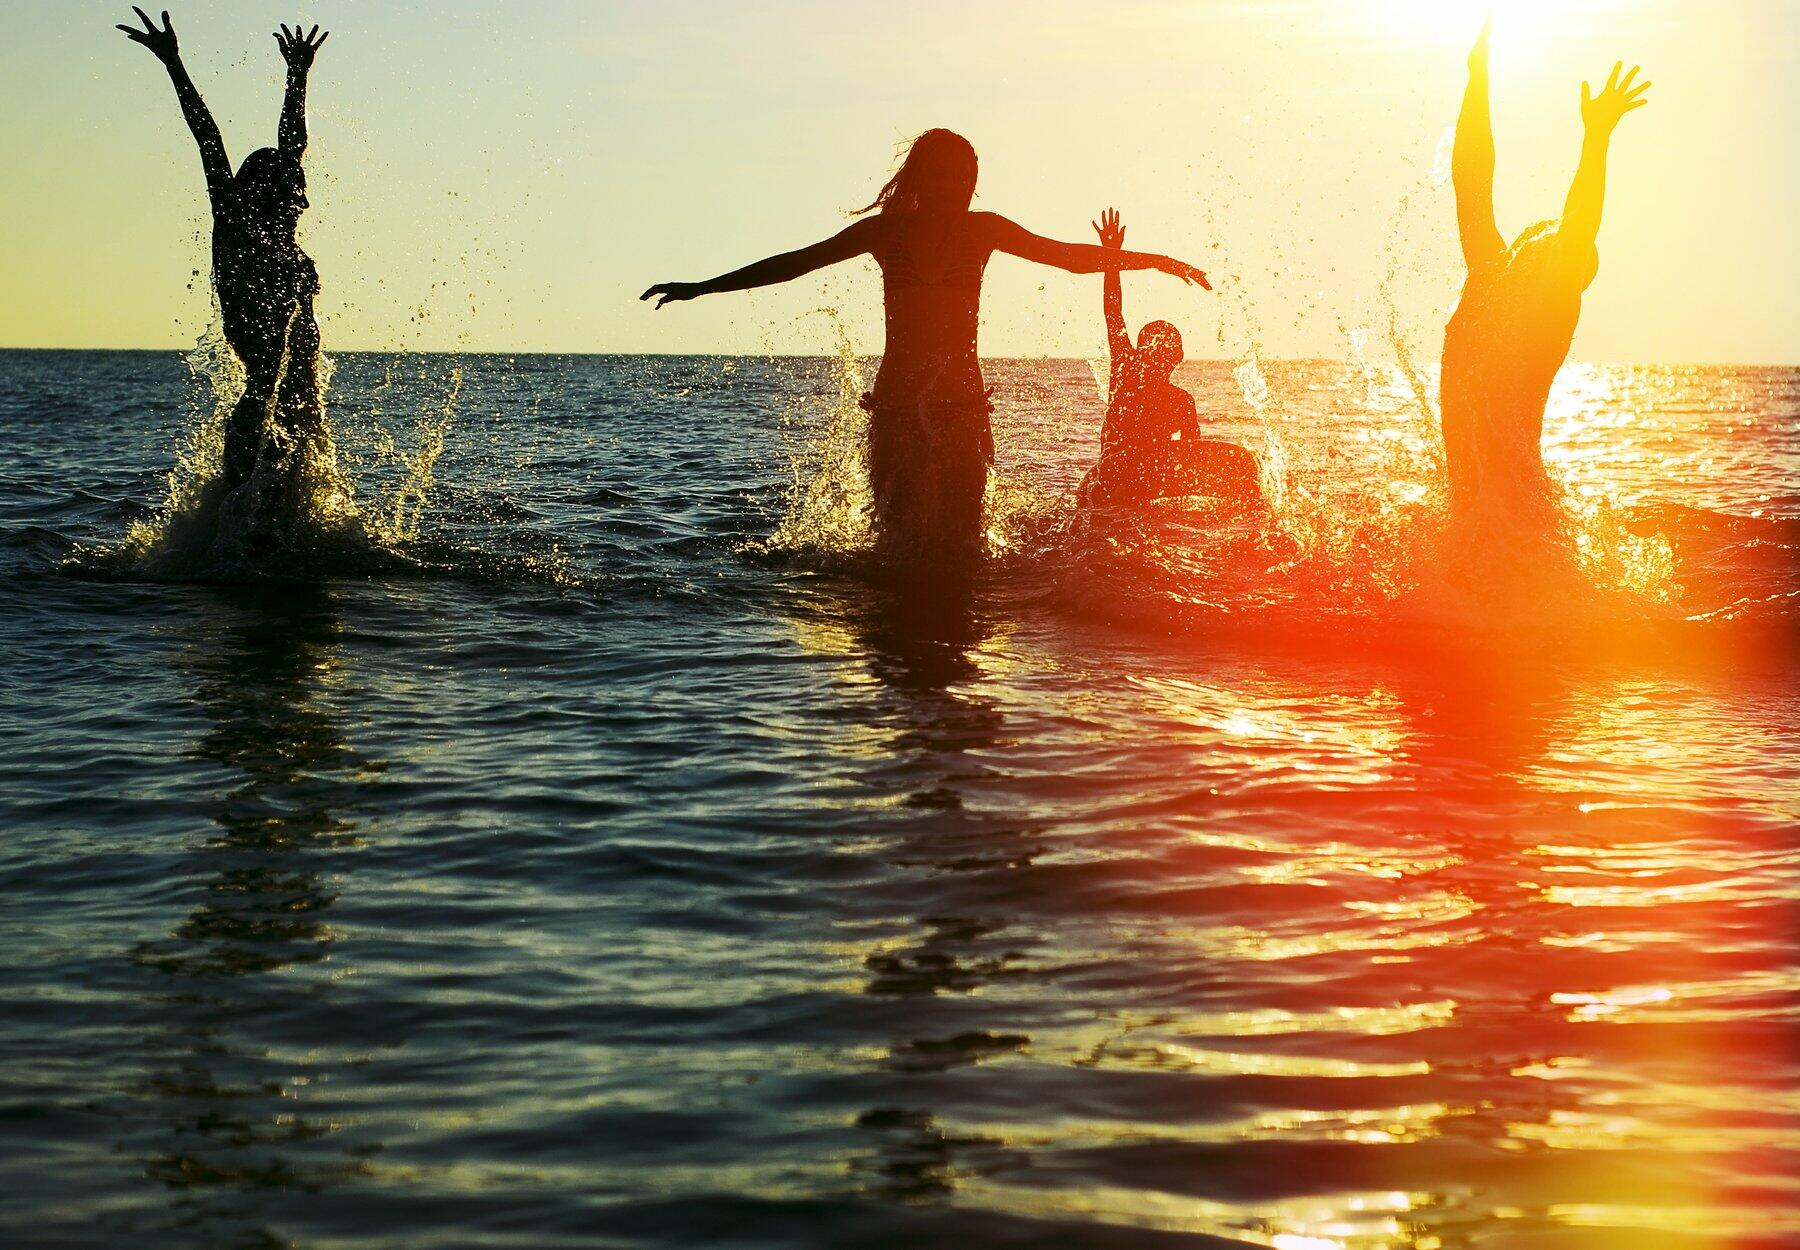 Friends playing in the ocean water at sunset